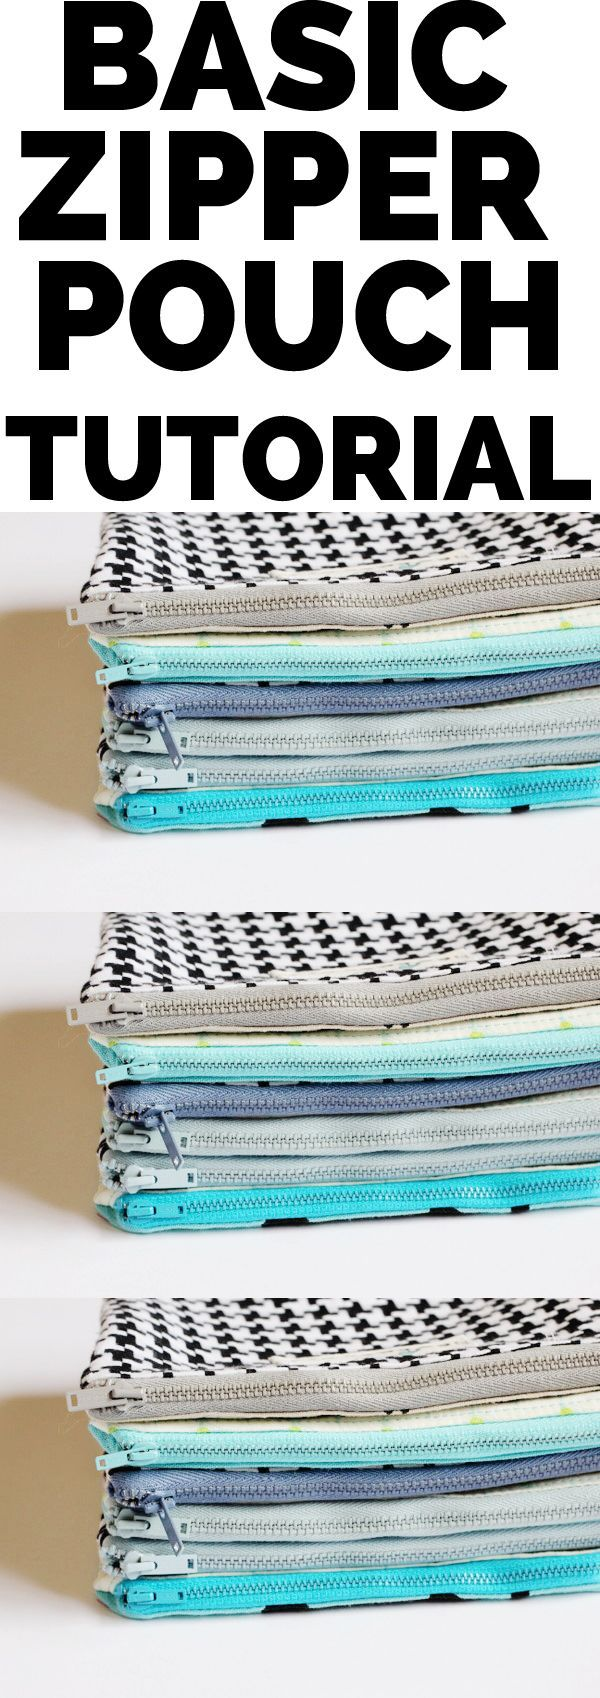 zipper pouch tutorial, basic zipper pouch tutorial, free zipper pouch tutorial, make a zipper pouch, easy zipper pouch tutorial